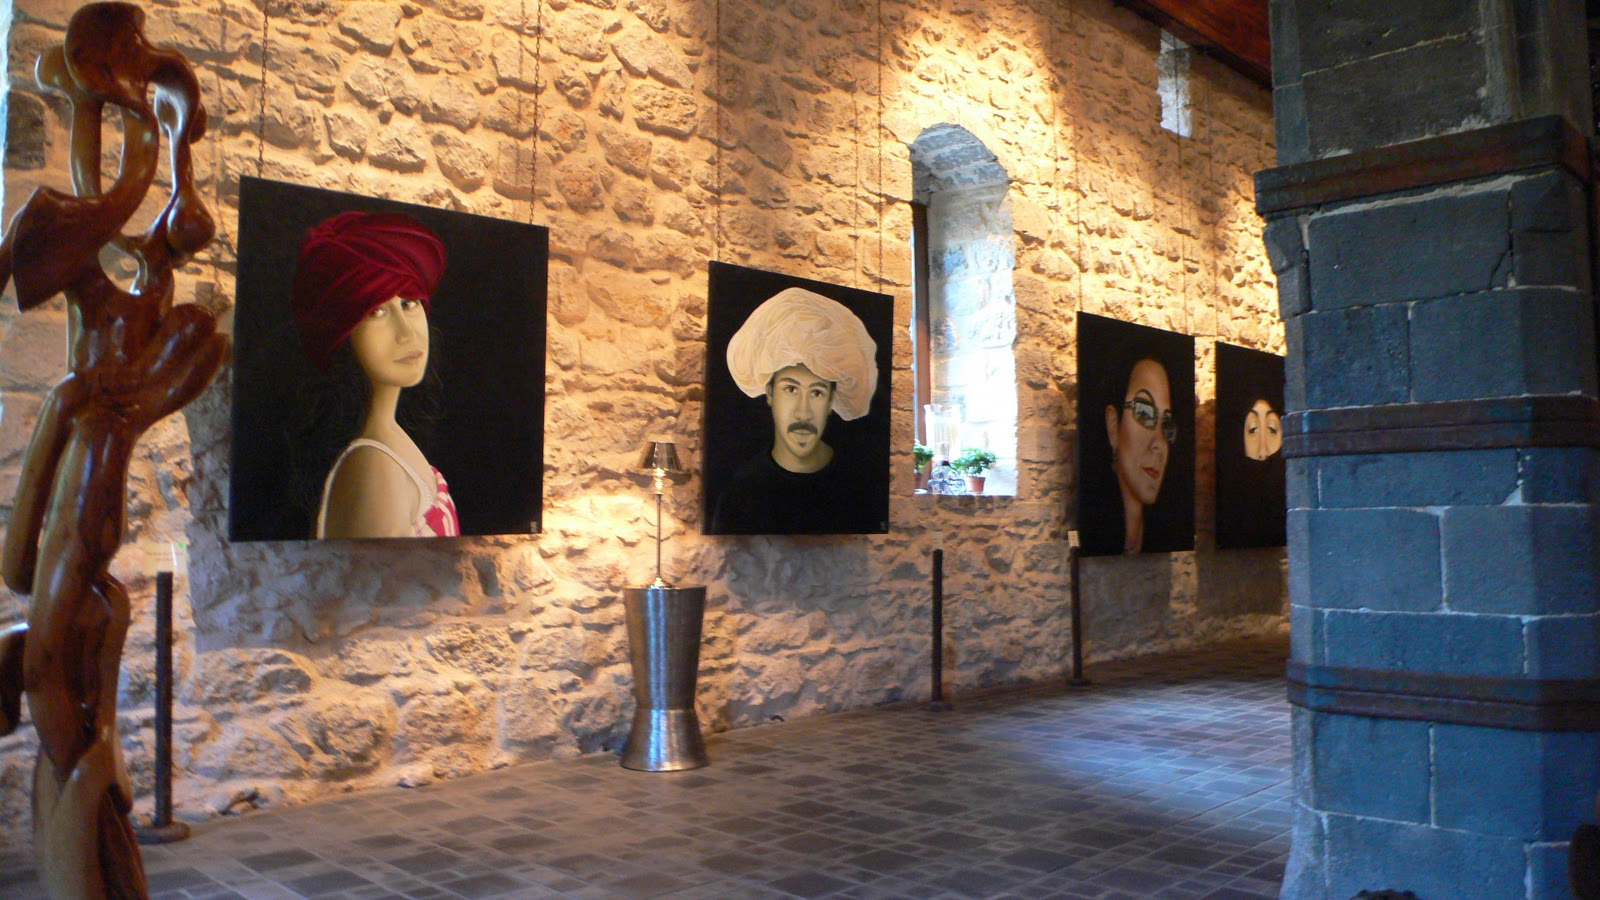 Bente christensen ernst exhibition in damascus may 2011 for The damascus house